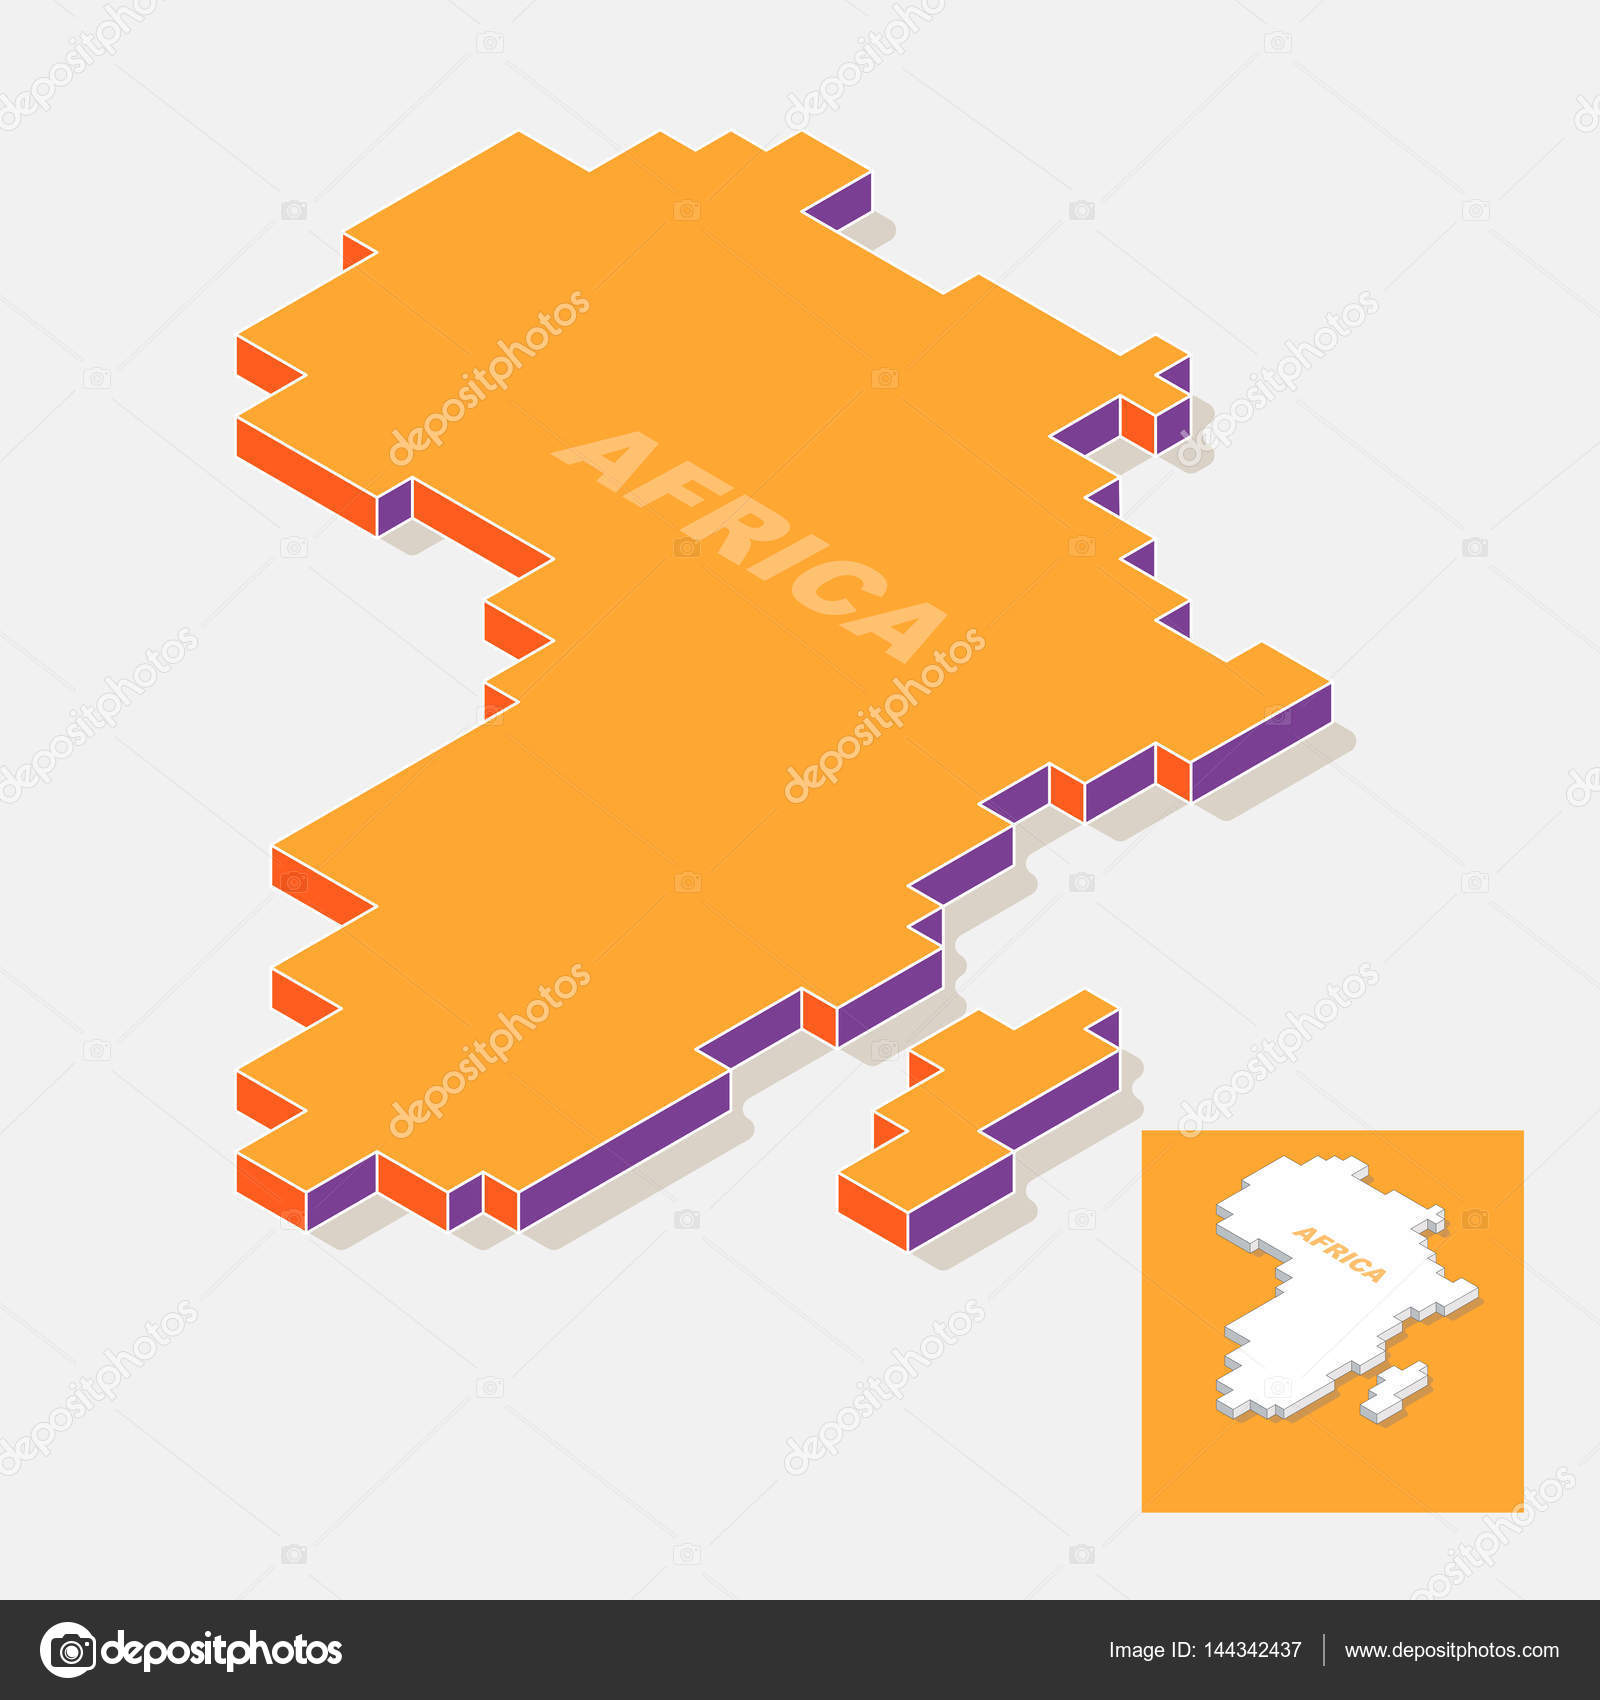 Shape Of Africa Map.Africa Continent Map Element With 3d Isometric Shape Isolated On